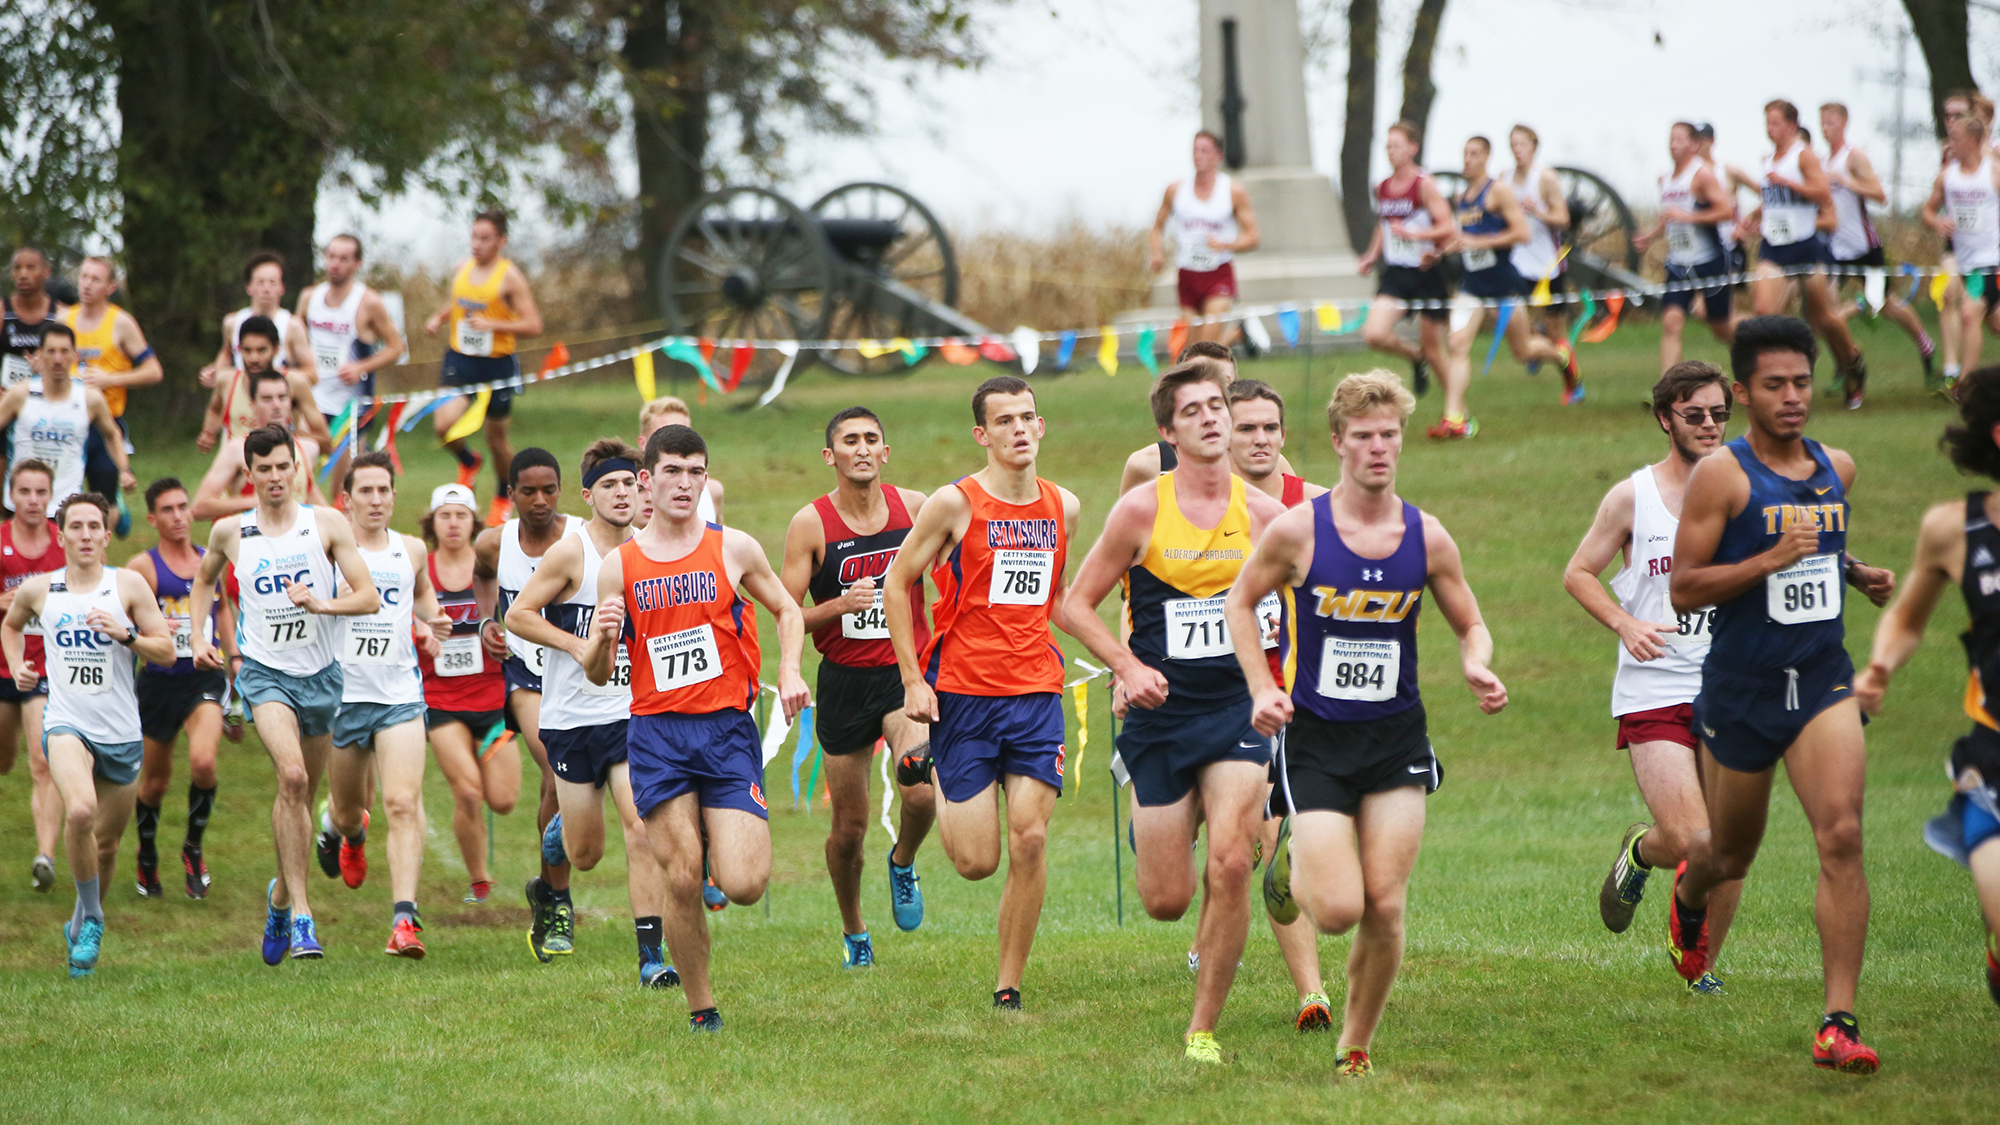 The cross country teams will host their final race on Sunday (Photo courtesy of Gettysburg College Athletics)